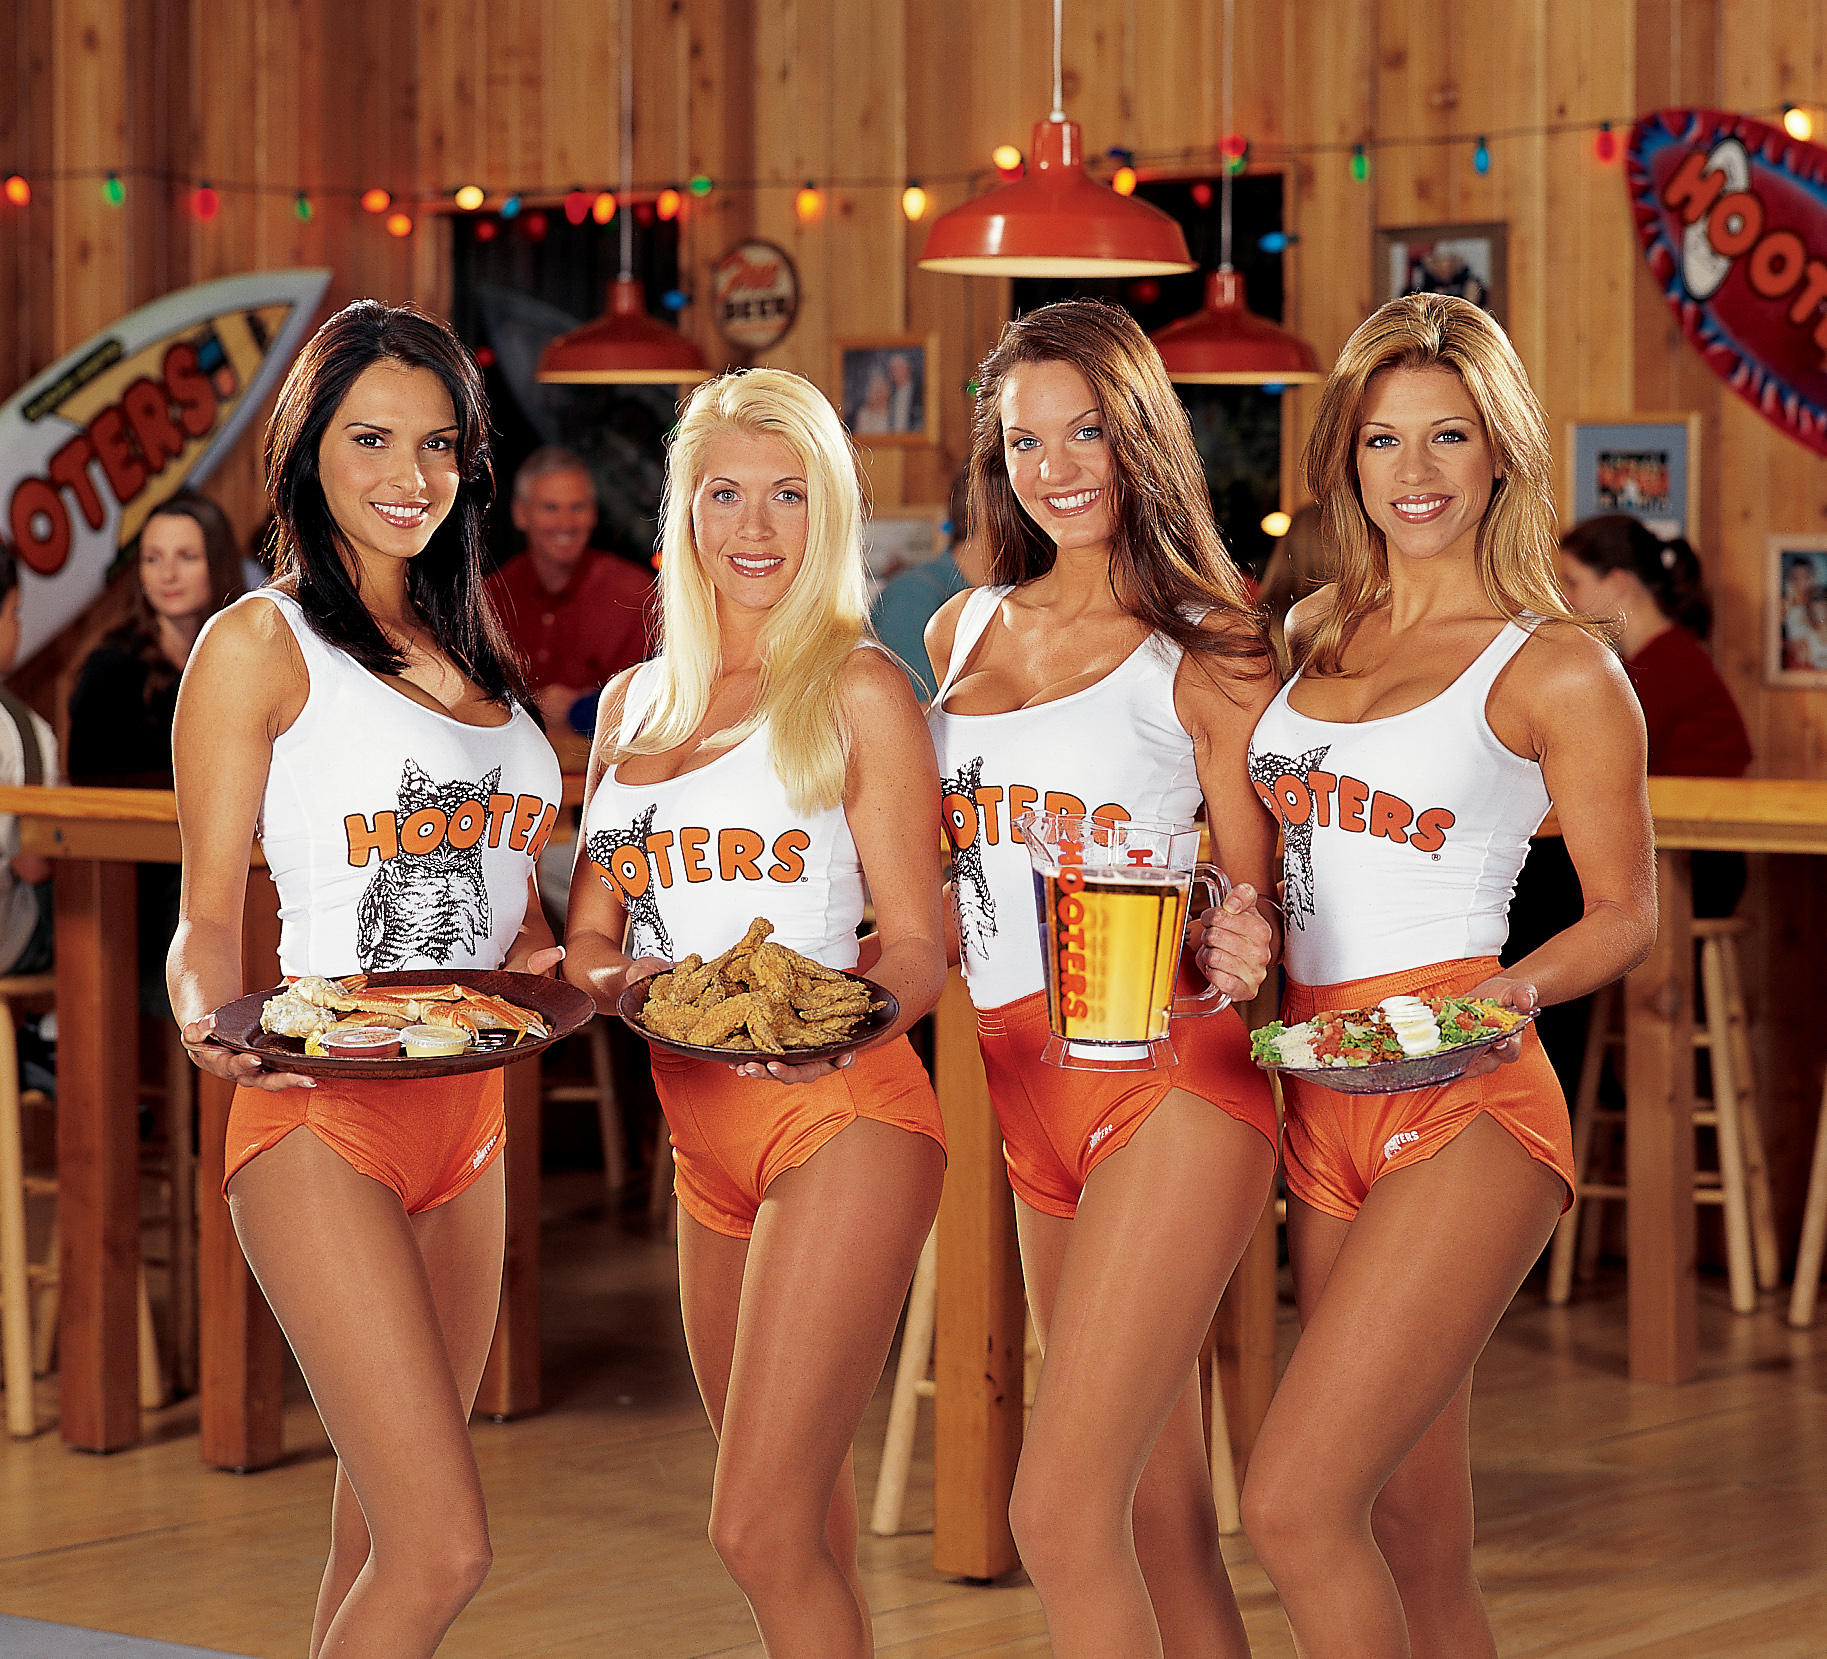 hooter girls nude uniform